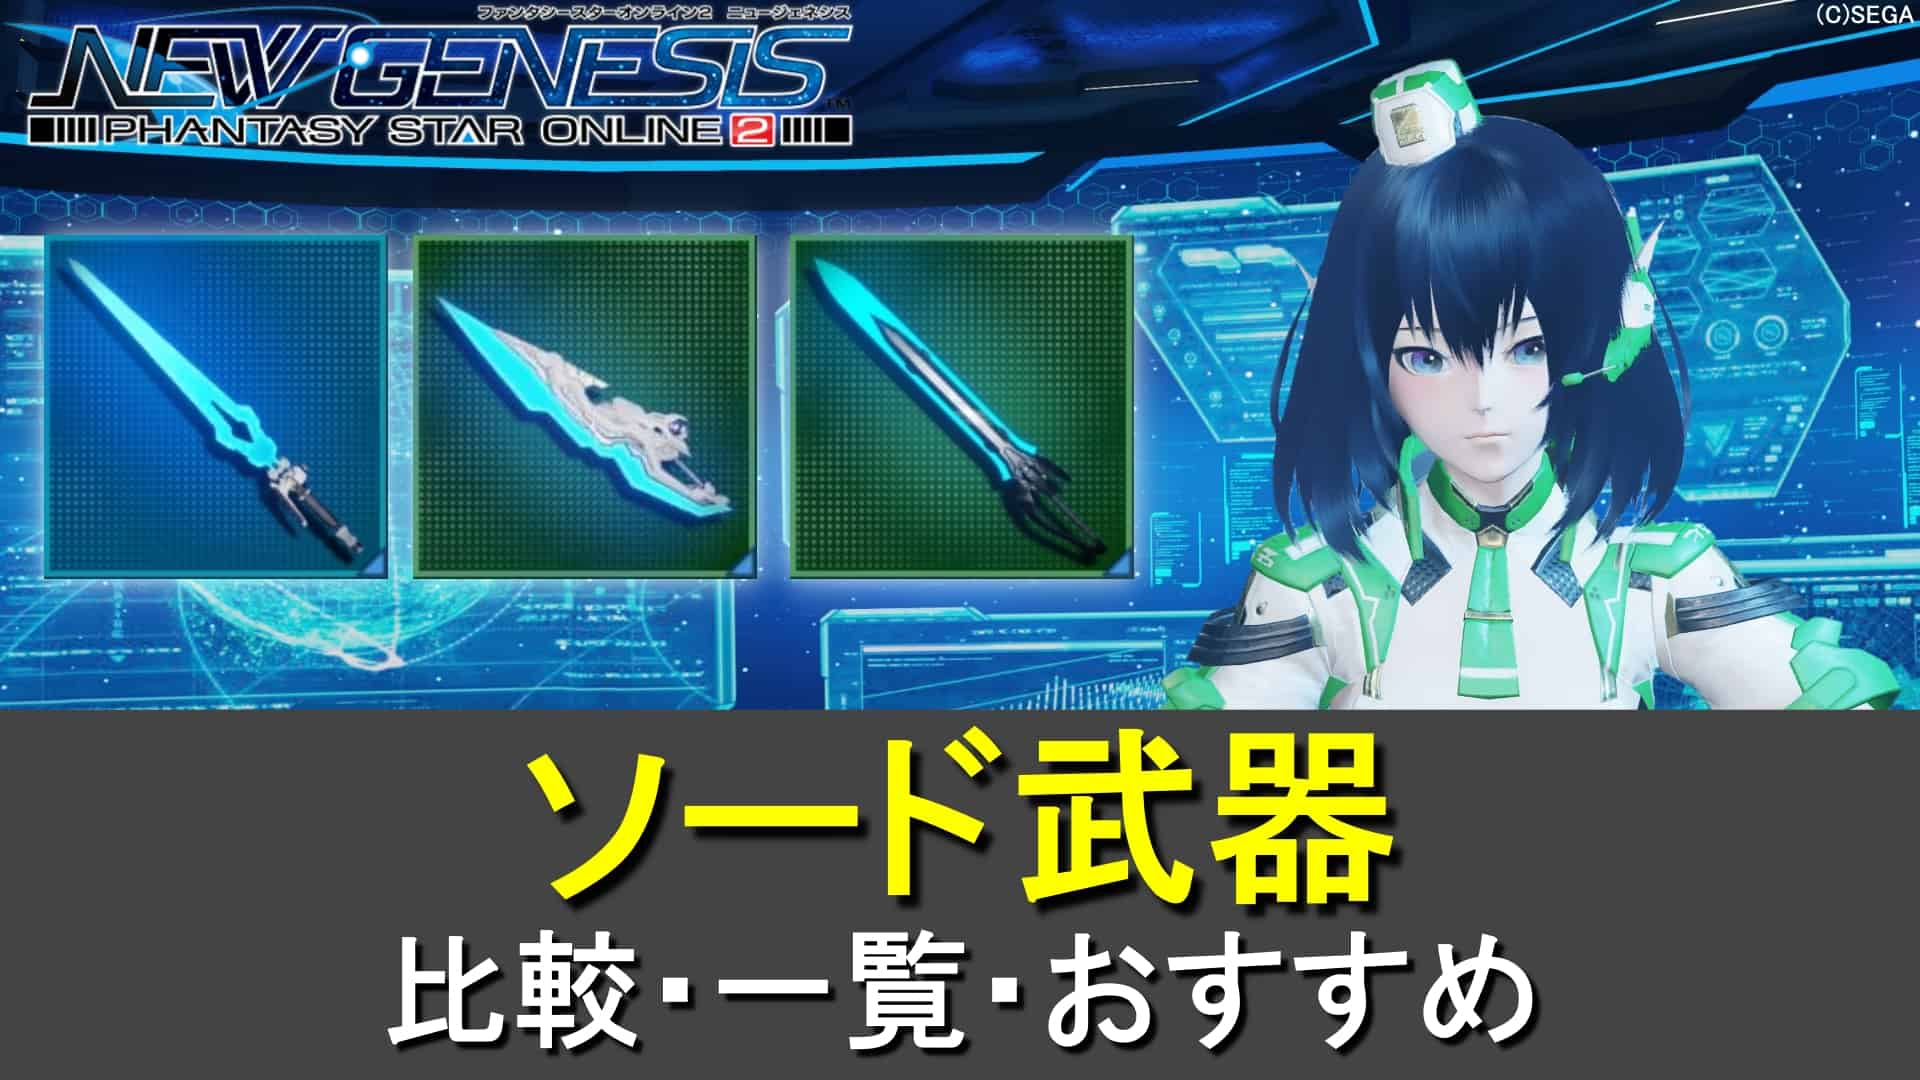 【PSO2NGS】ソード武器の一覧、潜在まとめ